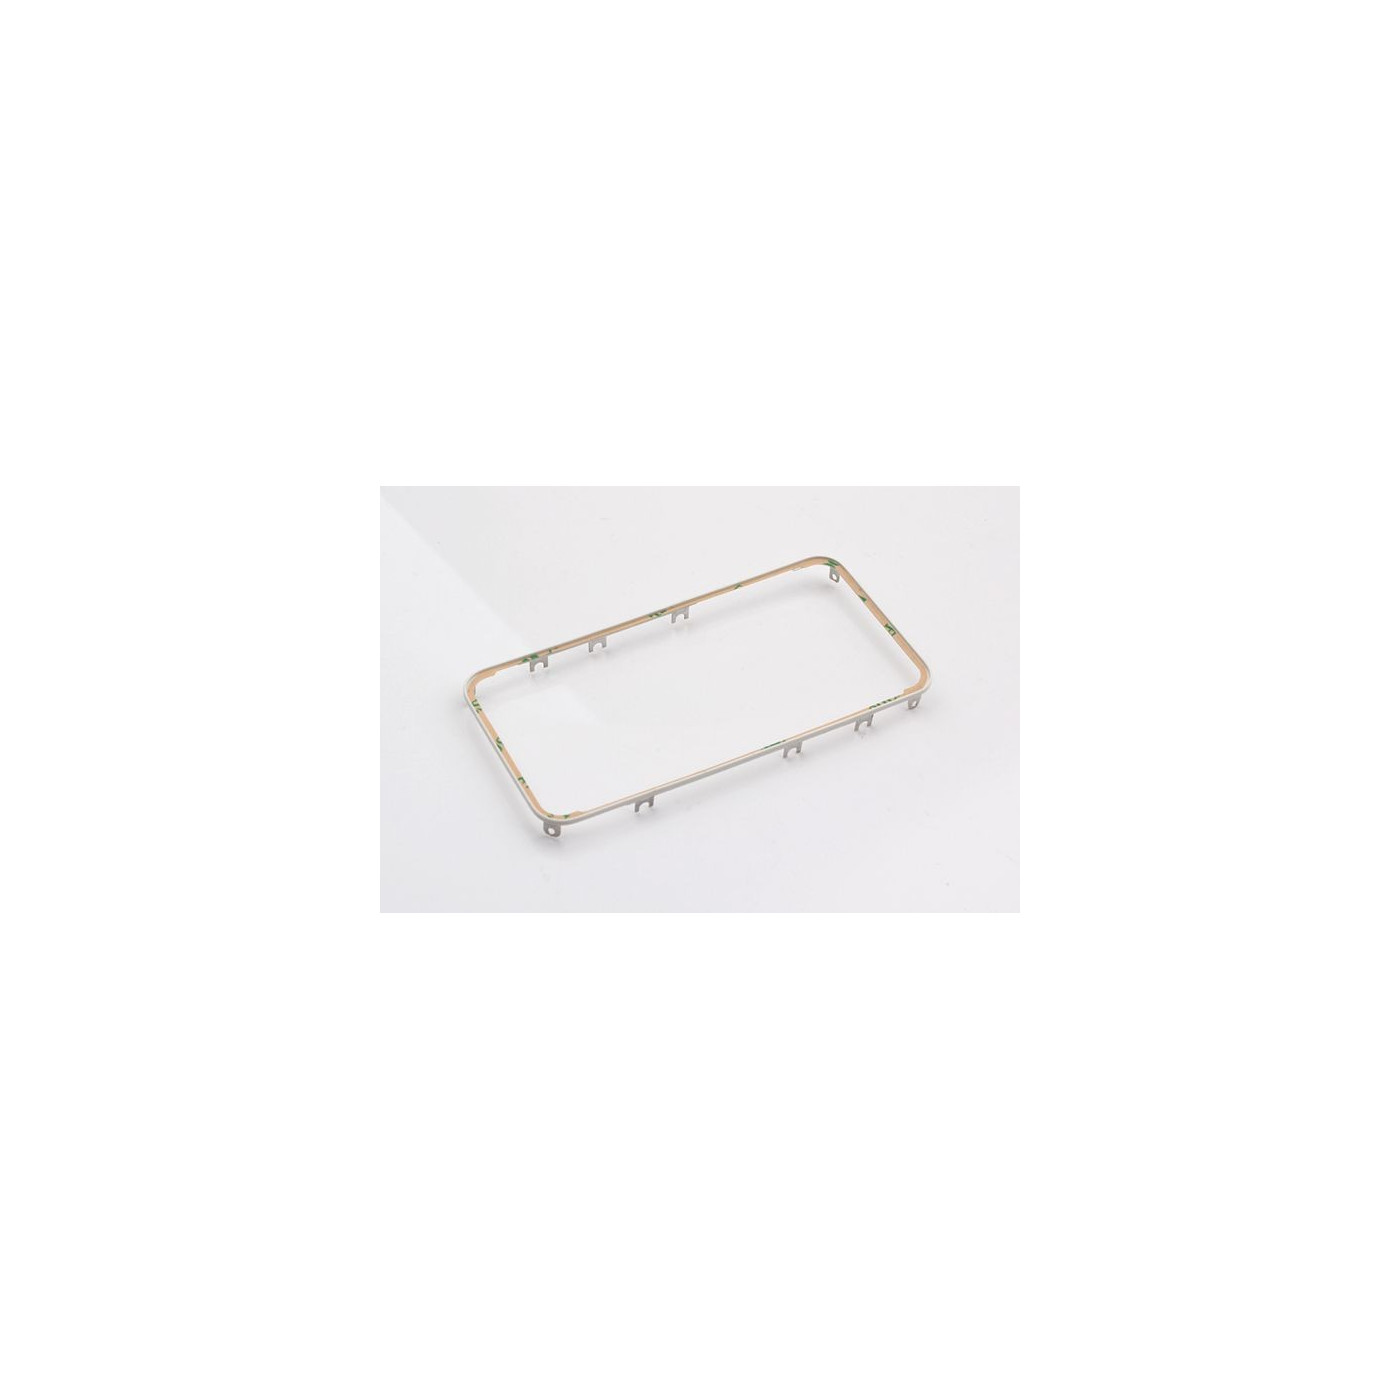 Frame digitizer frame for iphone 4 white adhesive